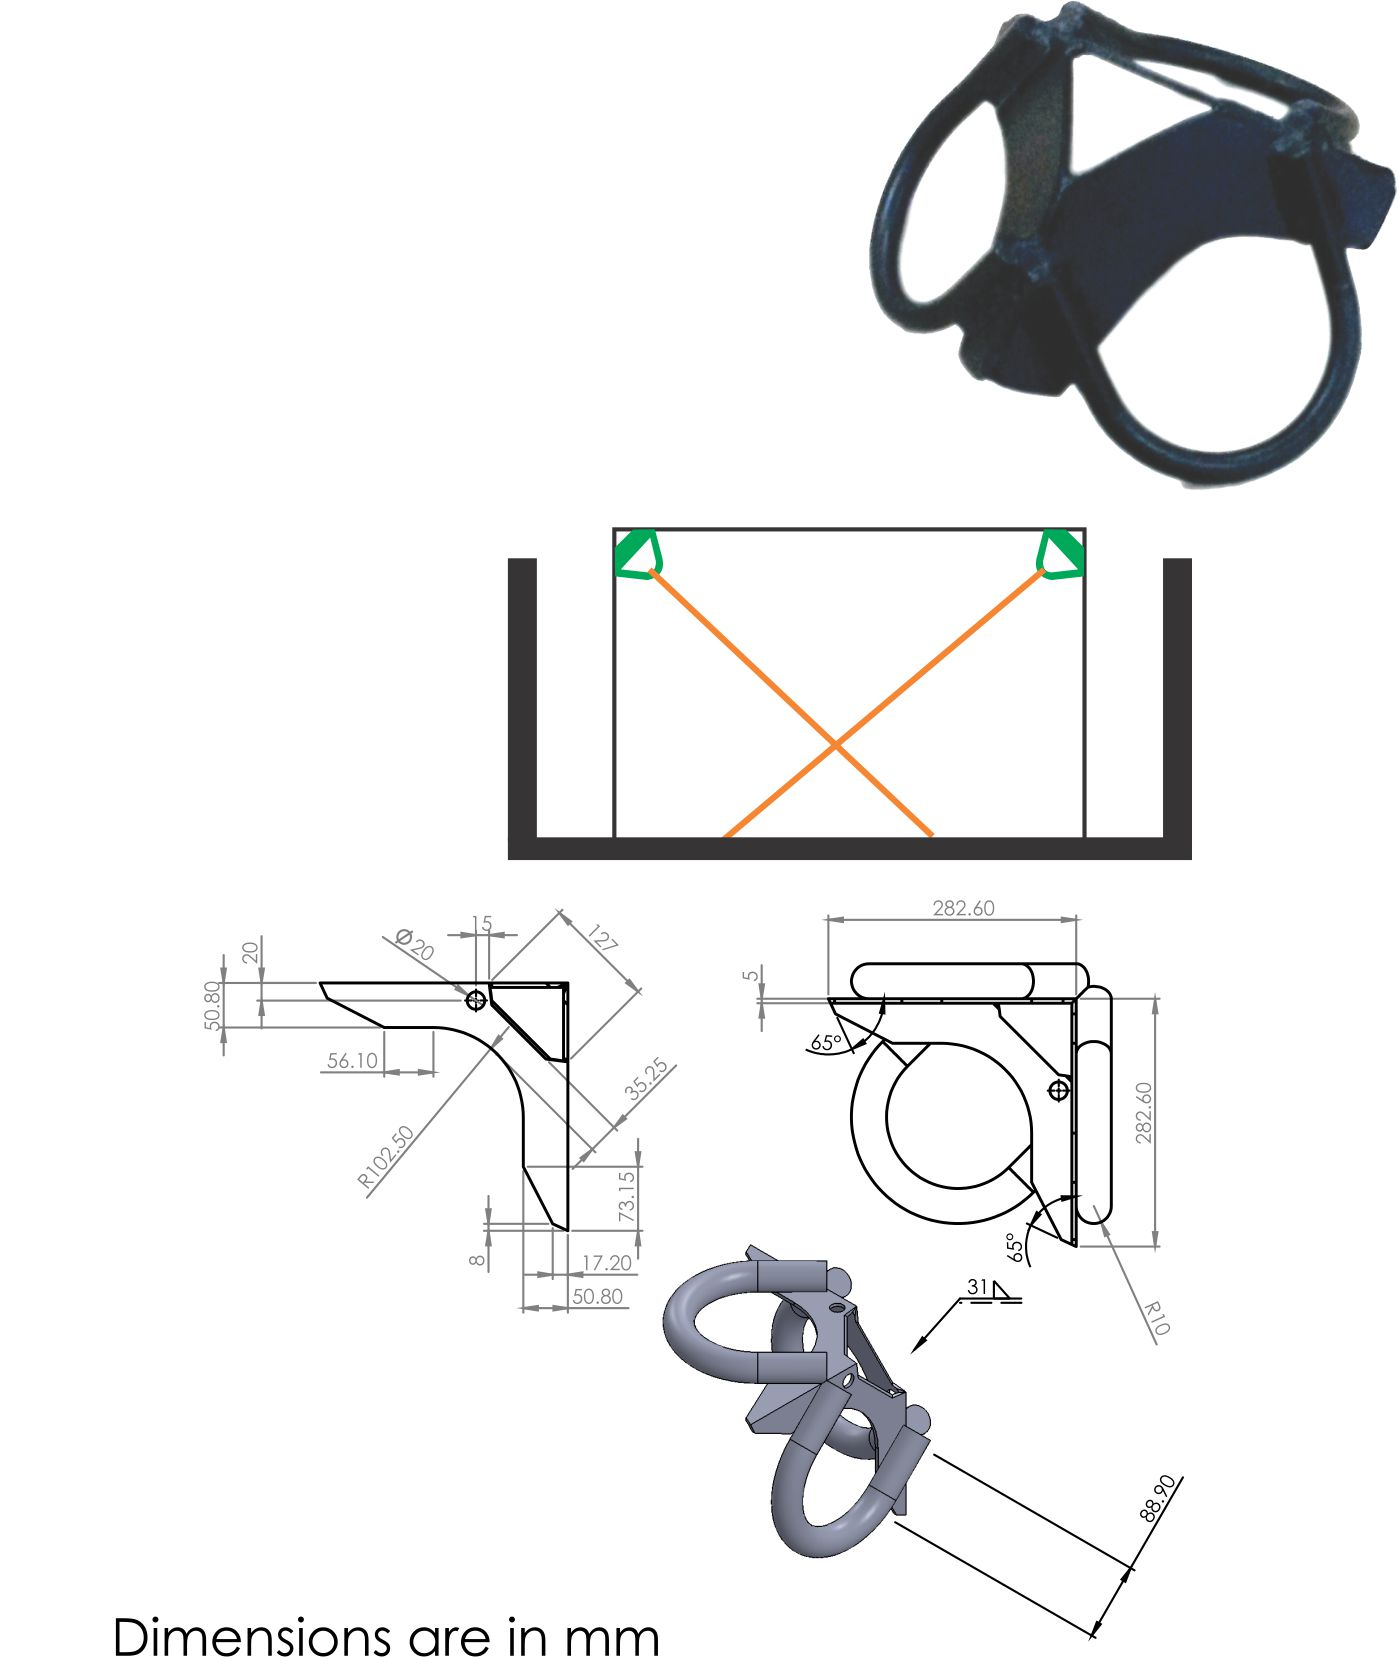 hight resolution of easily fits with ratchet lashing hooks and one way lashing straps